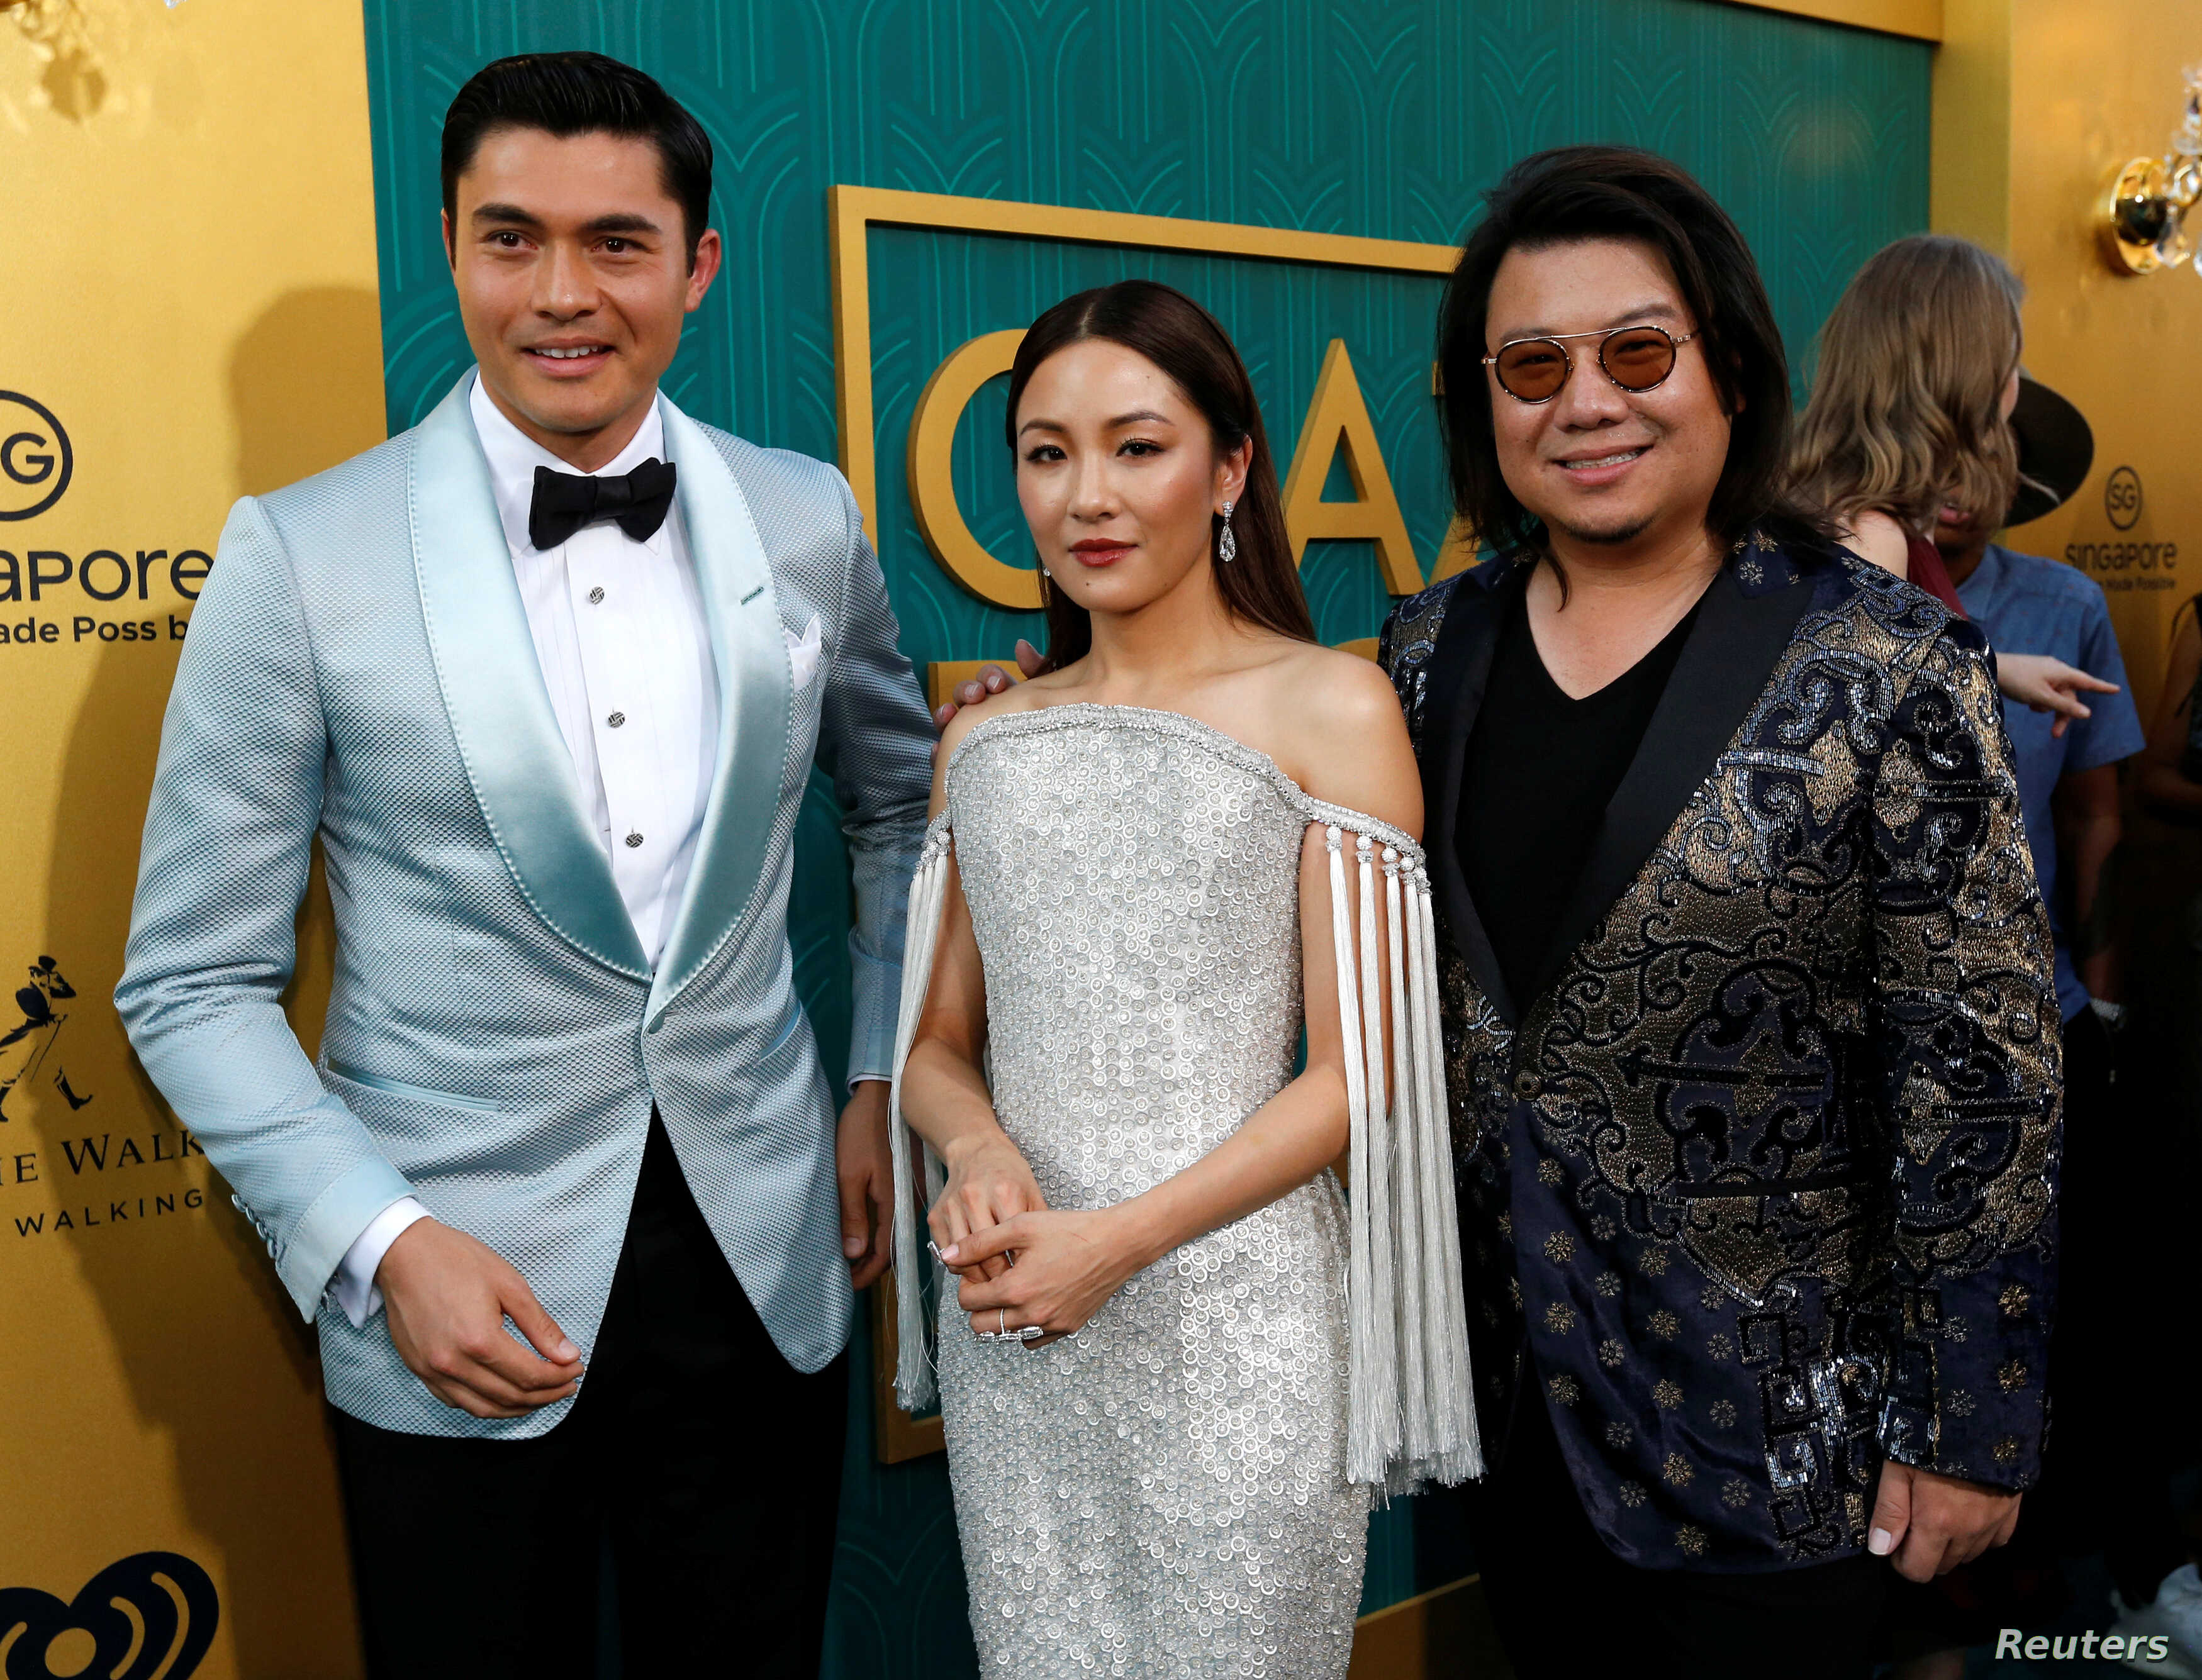 """Author Kevin Kwan (R) and cast members Henry Golding and Constance Wu pose at the premiere for """"Crazy Rich Asians"""" in Los Angeles, California, U.S., August 7, 2018."""